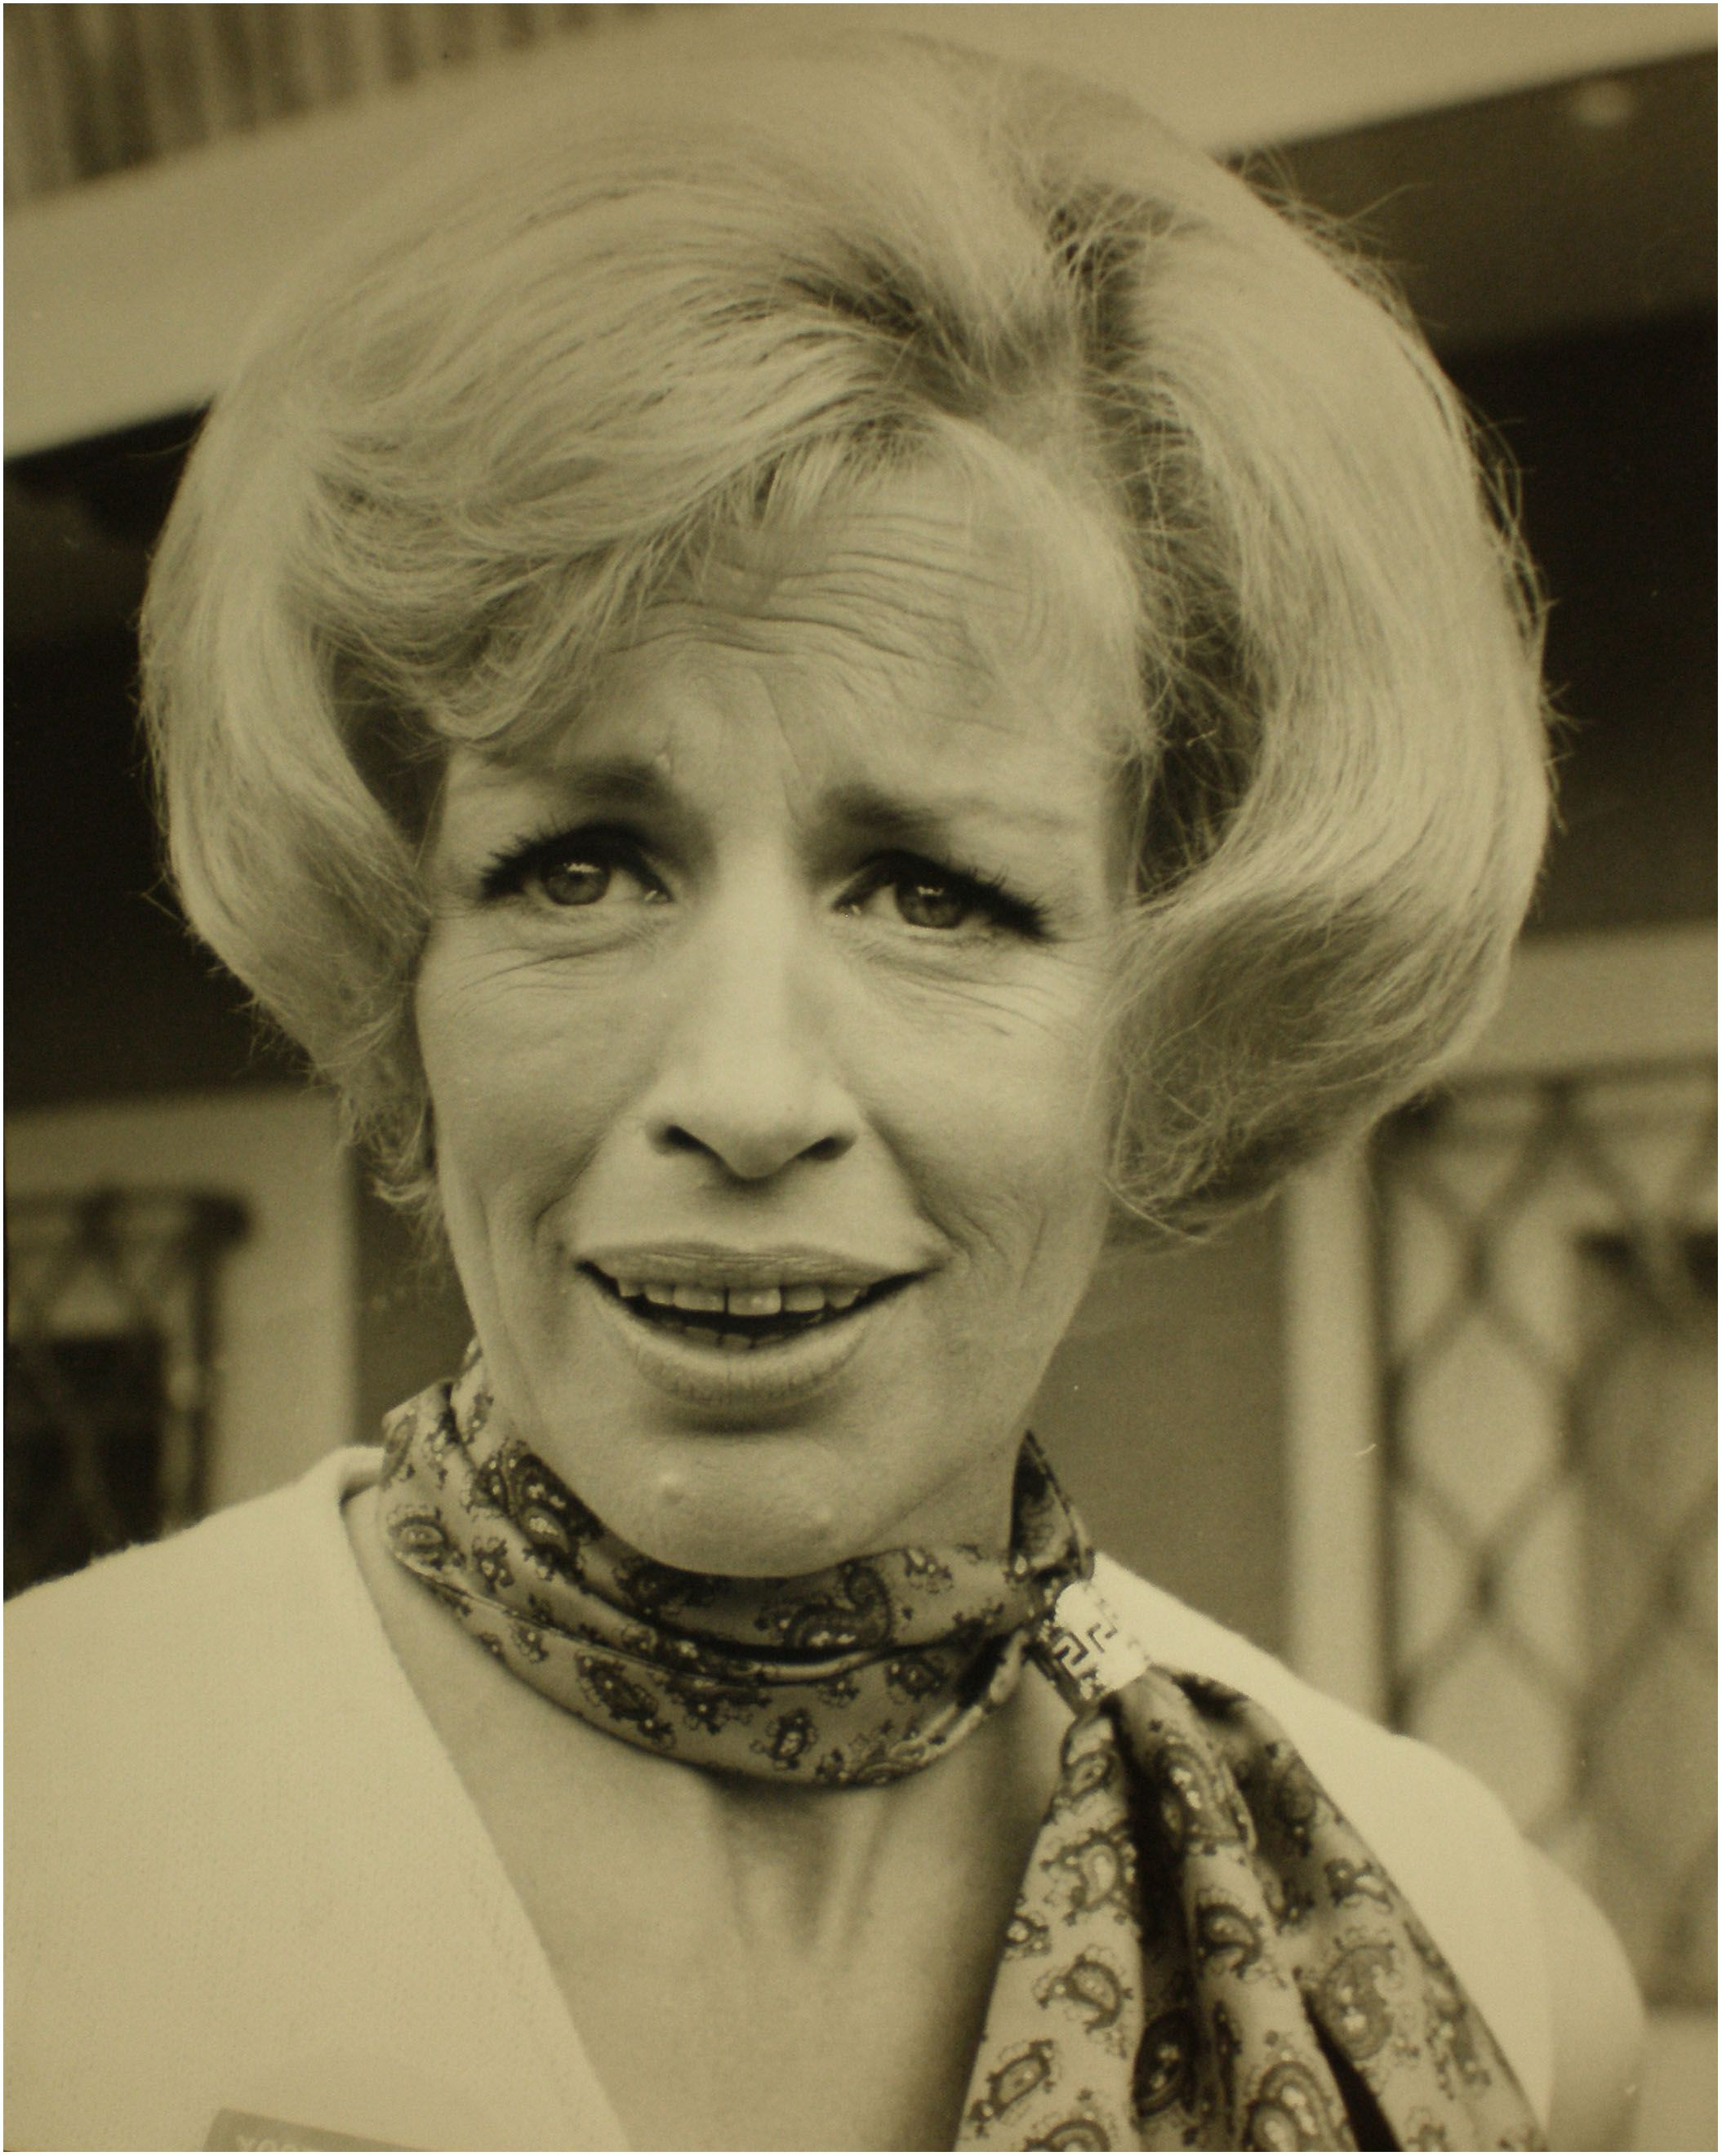 Discussion on this topic: Laurance Rudic (born 1952), yootha-joyce/